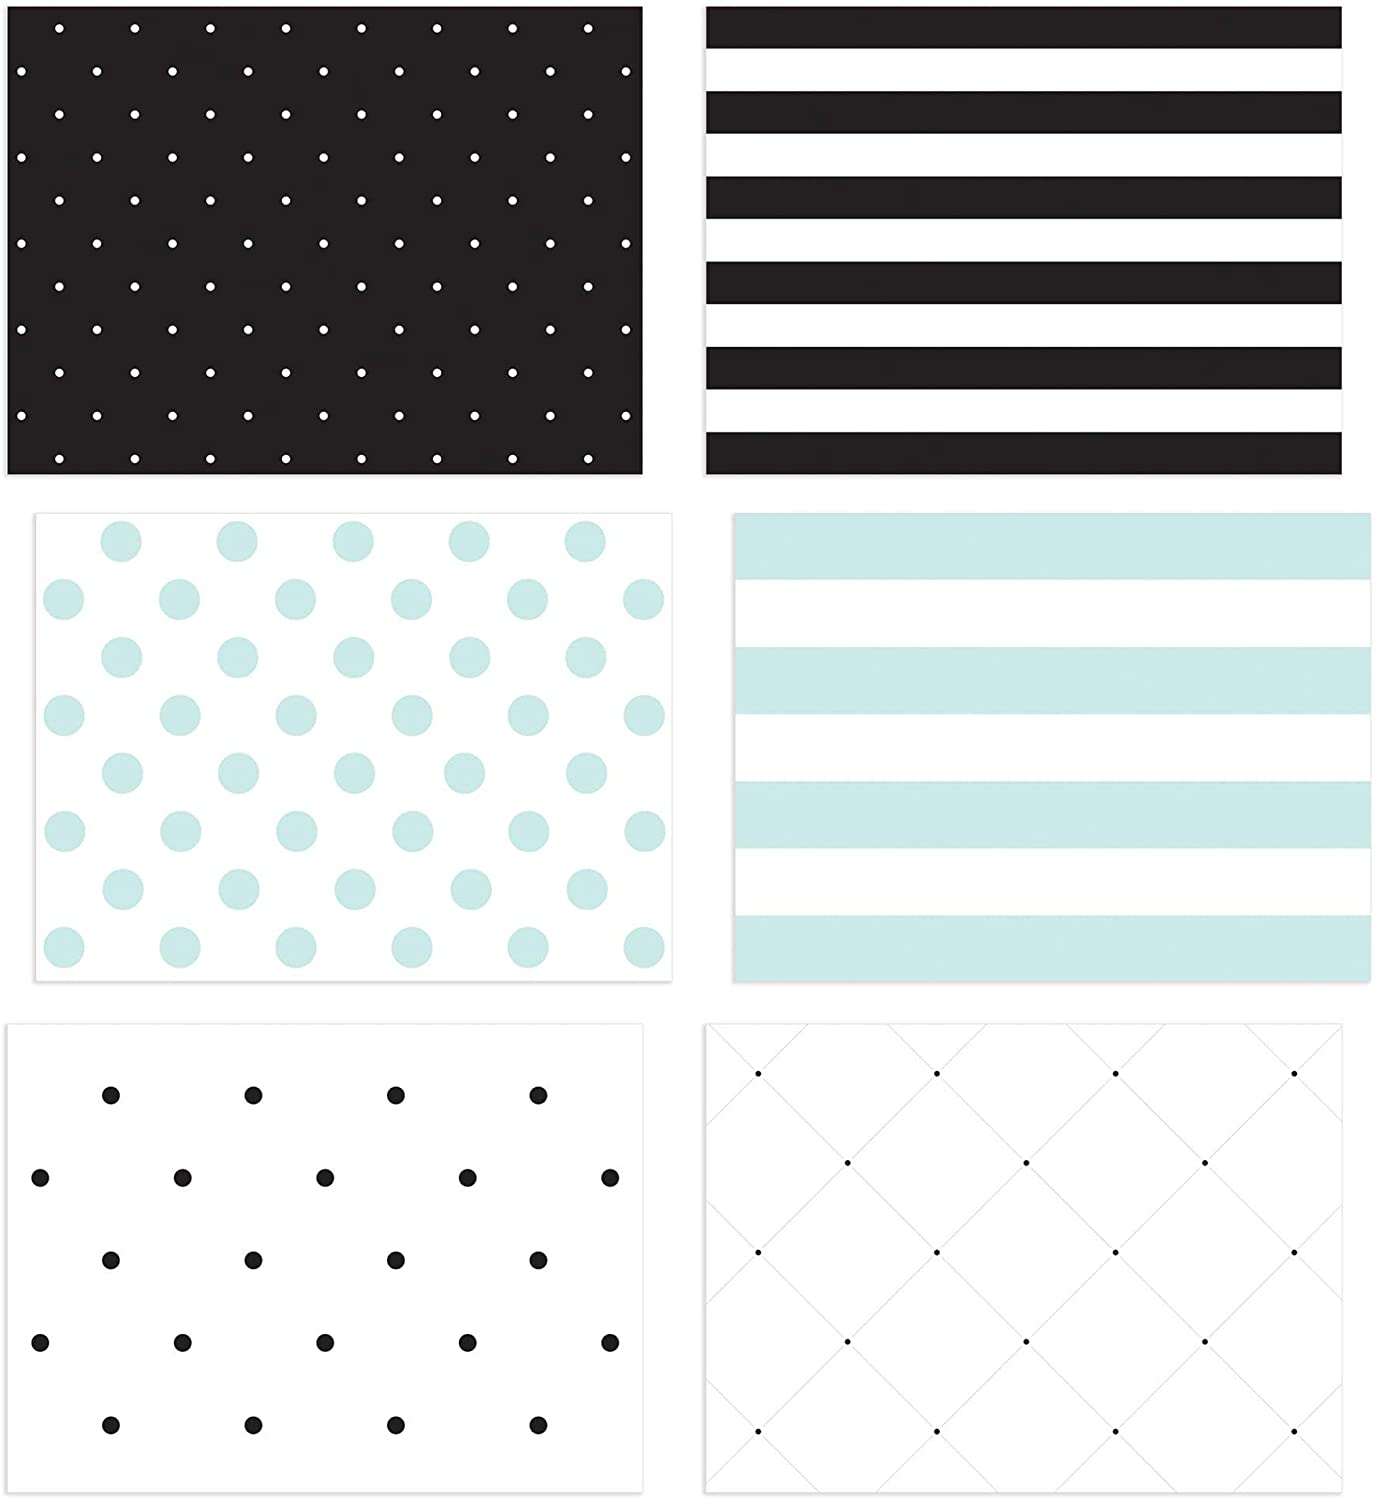 36 Pack Blank Note Cards, All Occasion Polka Dot and Striped Designs, Greeting Card Bulk Box Set, Blue, Black and White Notecards, Blank Note Cards with Envelopes Included, 3.5 x 5 Inches